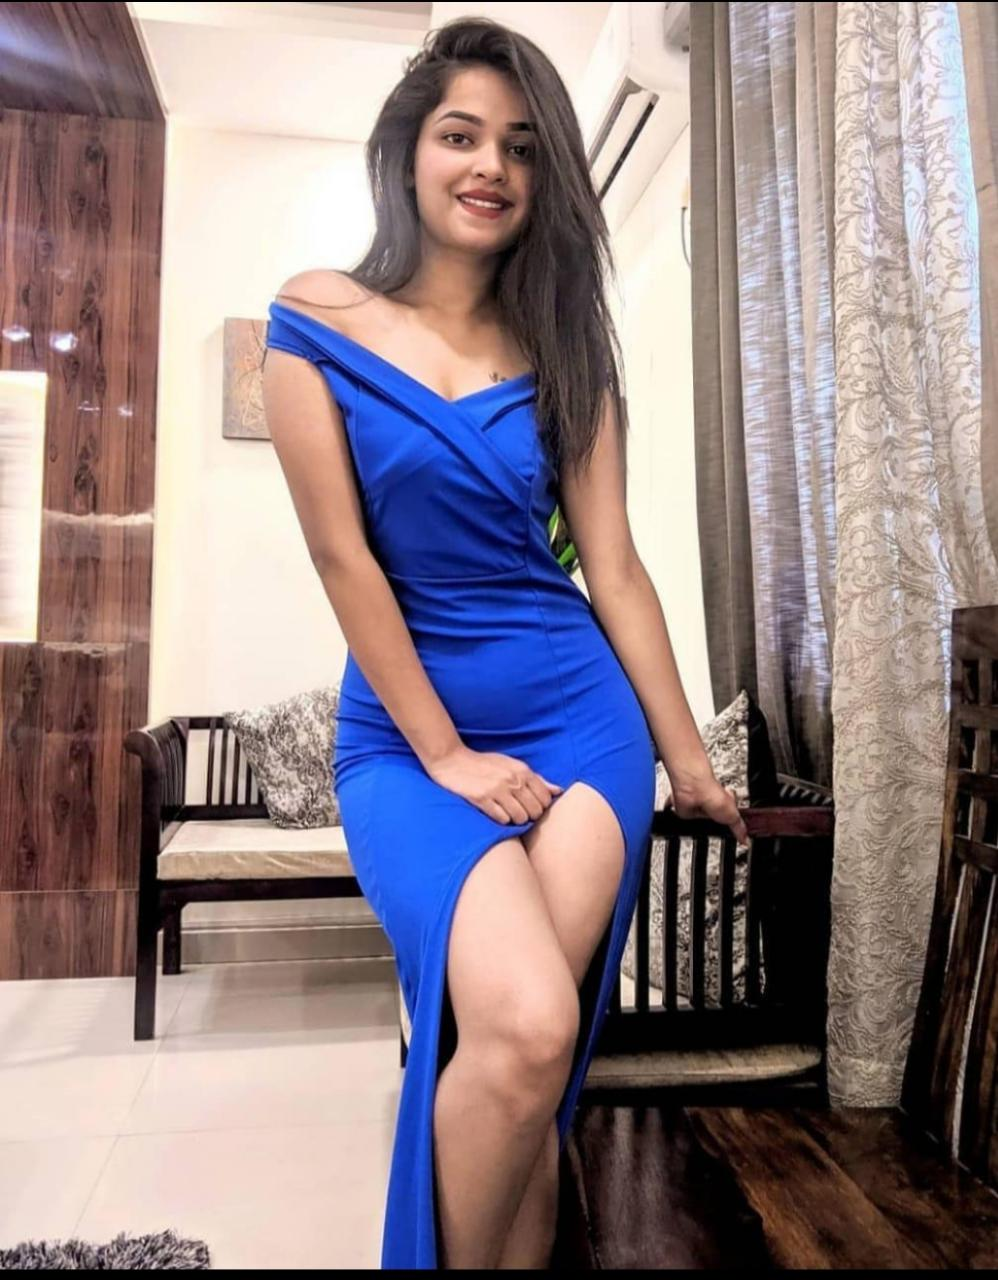 Vip Call Girls In Green Park 9599538384 Escorts ServiCe In Delhi Ncr